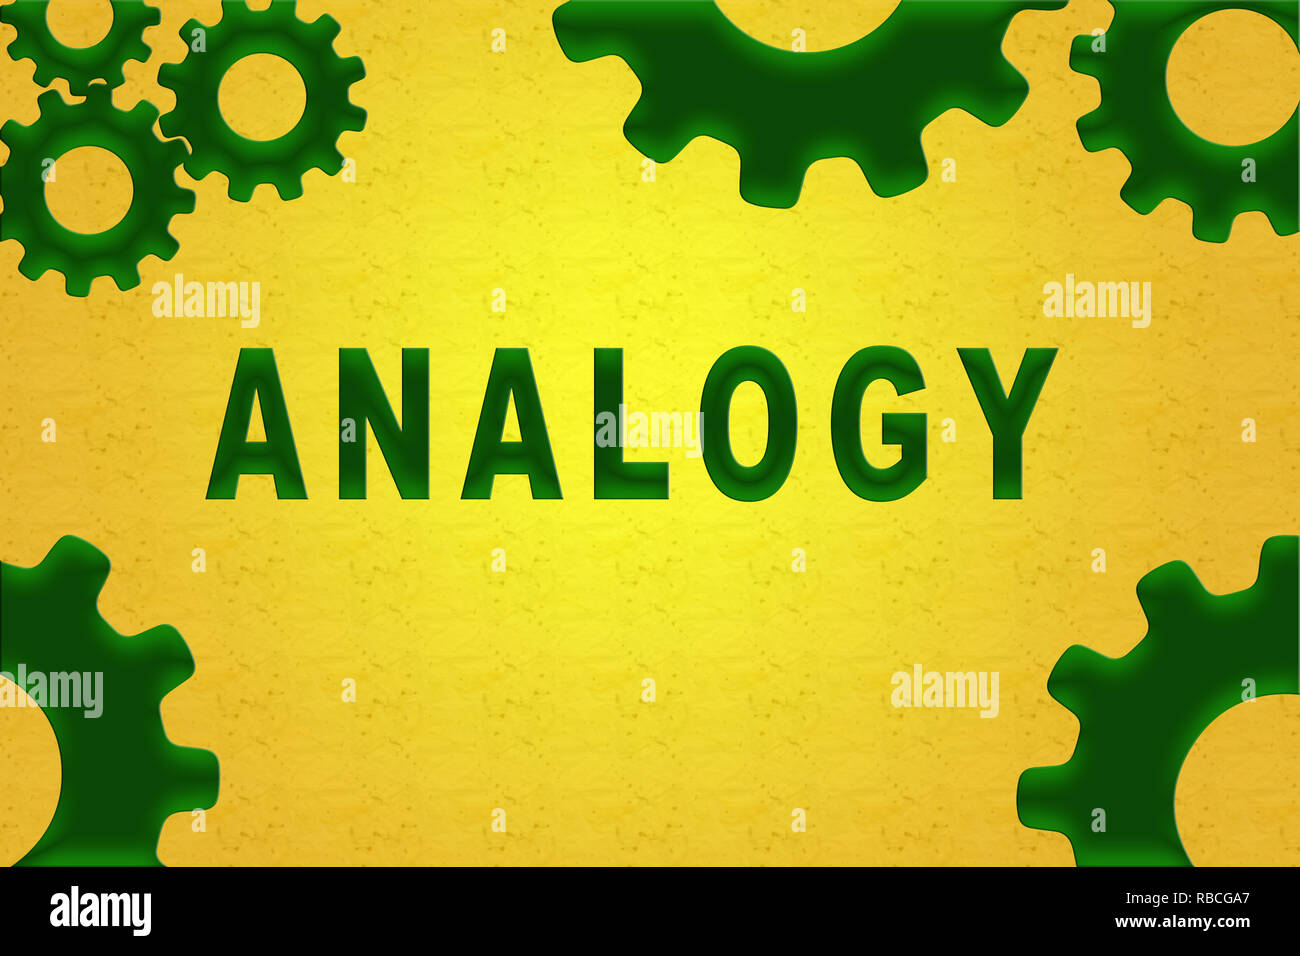 ANALOGY sign concept illustration with green gear wheel figures on yellow background - Stock Image